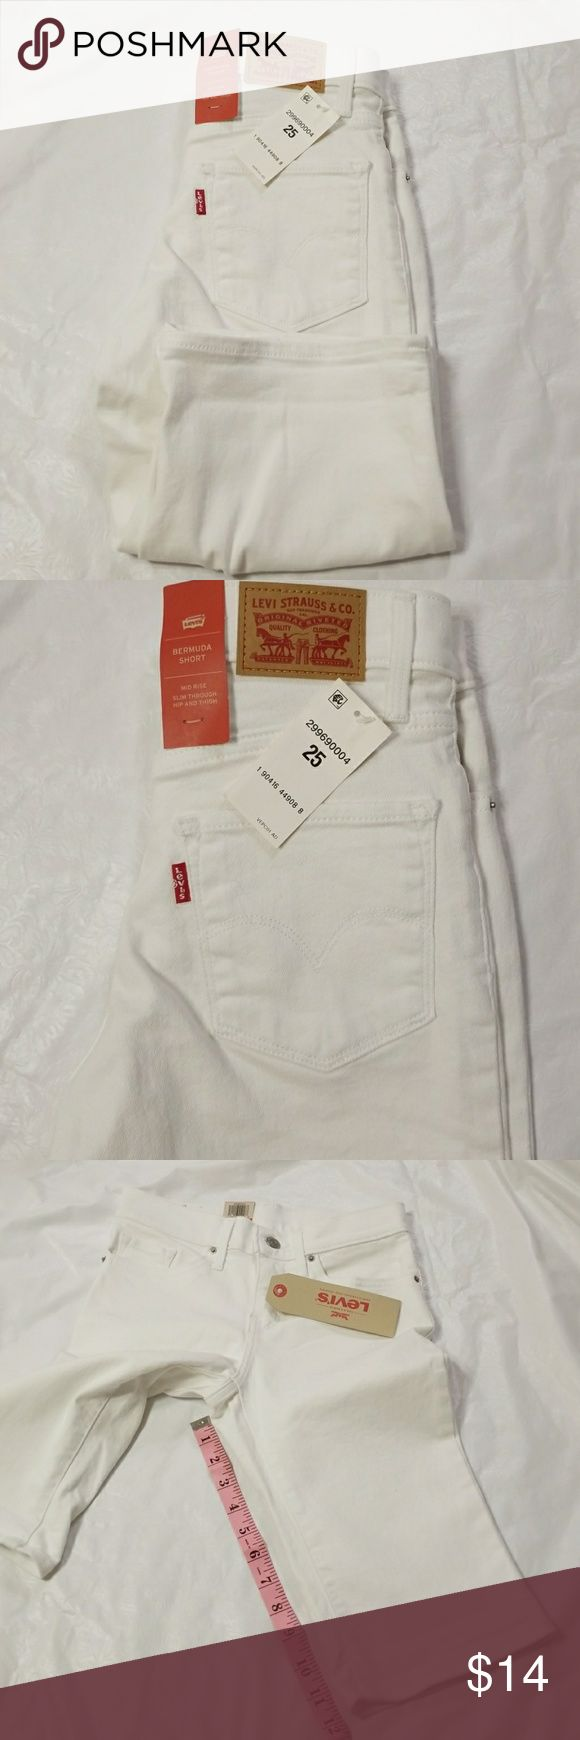 Levi Bermuda white jean short Brand new with tag  Mid rise Slim through hip and thigh  97% cotton 3% elastane   Machine wash cold Levi's Shorts Bermudas